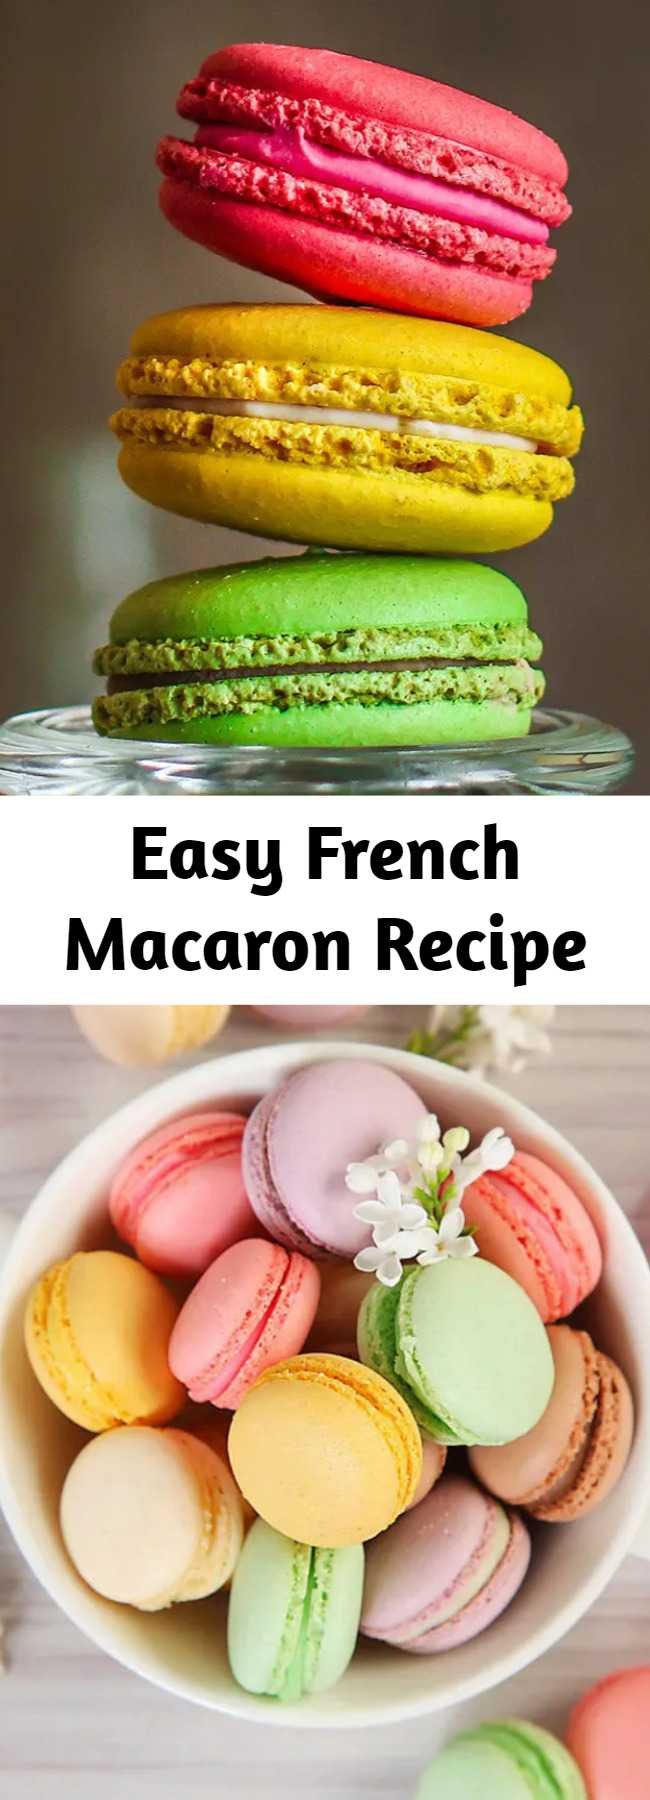 Easy French Macaron Recipe - This is an easy how to make crispy, crunchy, chewy french macarons (pronounced mac-ah-rohn). I make a big batch of these and then freeze them so I have some on hand for these trendy cream tarts!